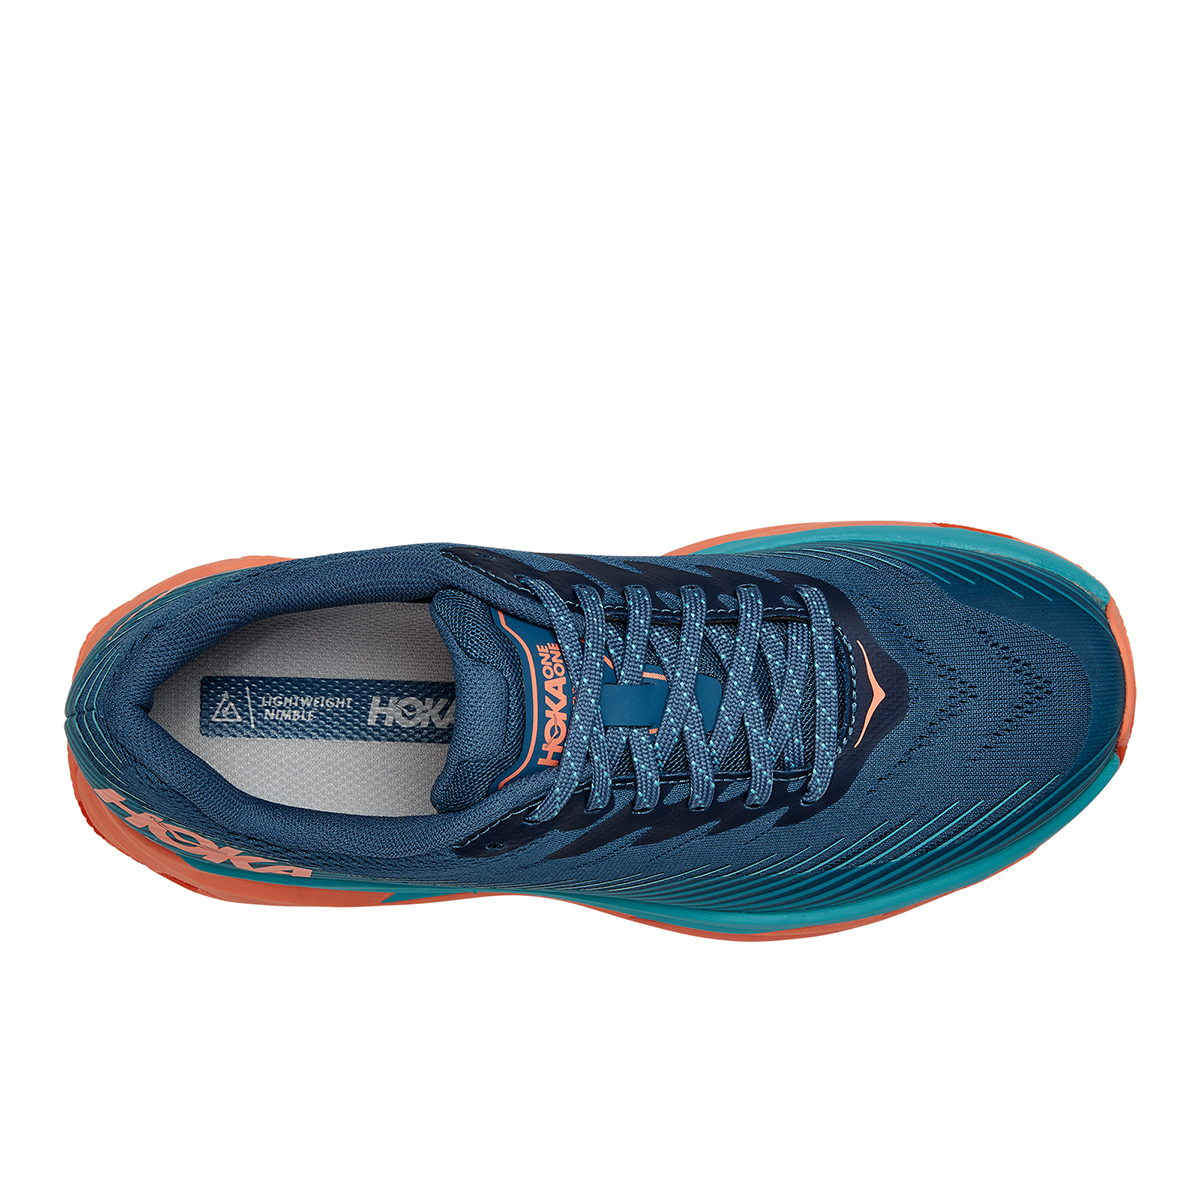 Women's Hoka One One Torrent 2 Trail Running Shoe - Color: Real Teal / Cantaloupe - Size: 5 - Width: Regular, Real Teal / Cantaloupe, large, image 3